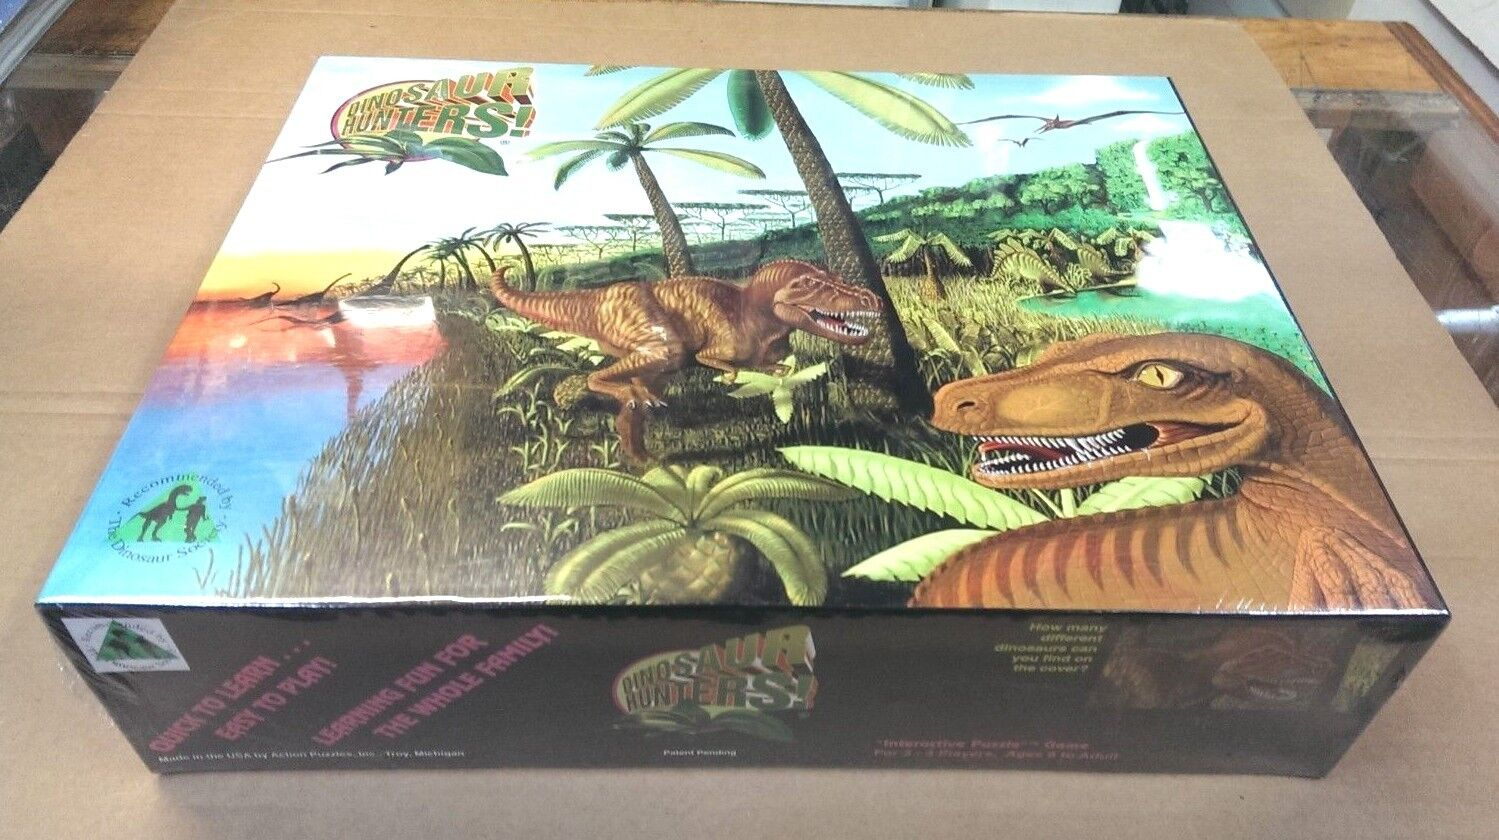 DINOSAUR HUNTERS   Factory Sealed   Board Game   1993 - EXTREMELY RARE